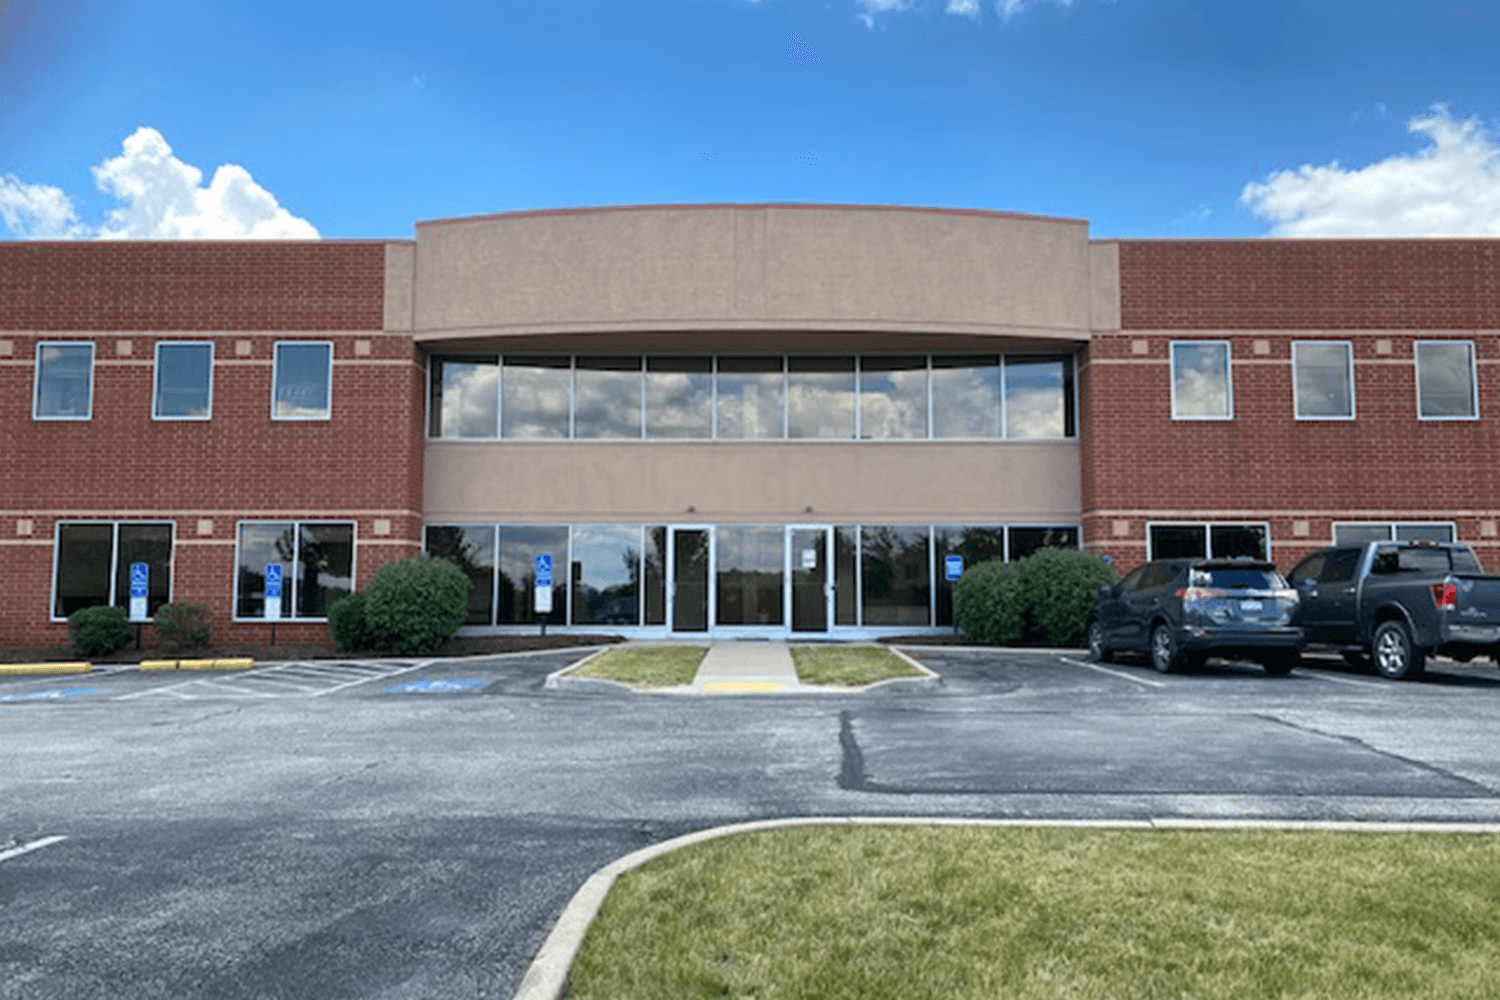 exterior or 401 Technology Drive, a two-story office building